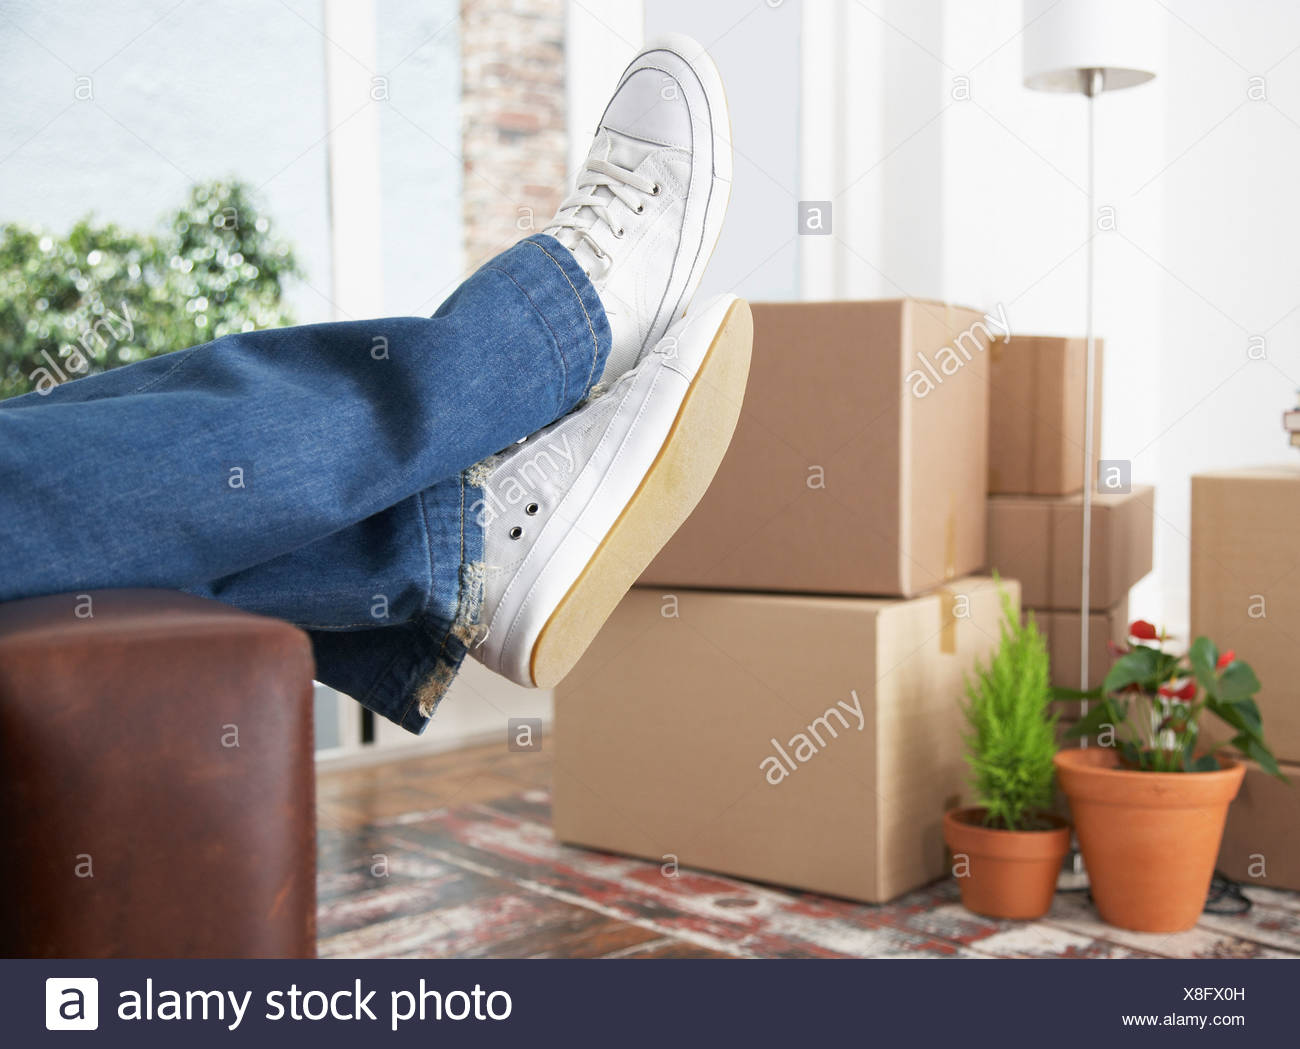 Man lying down on sofa in home with cardboard boxes - Stock Image